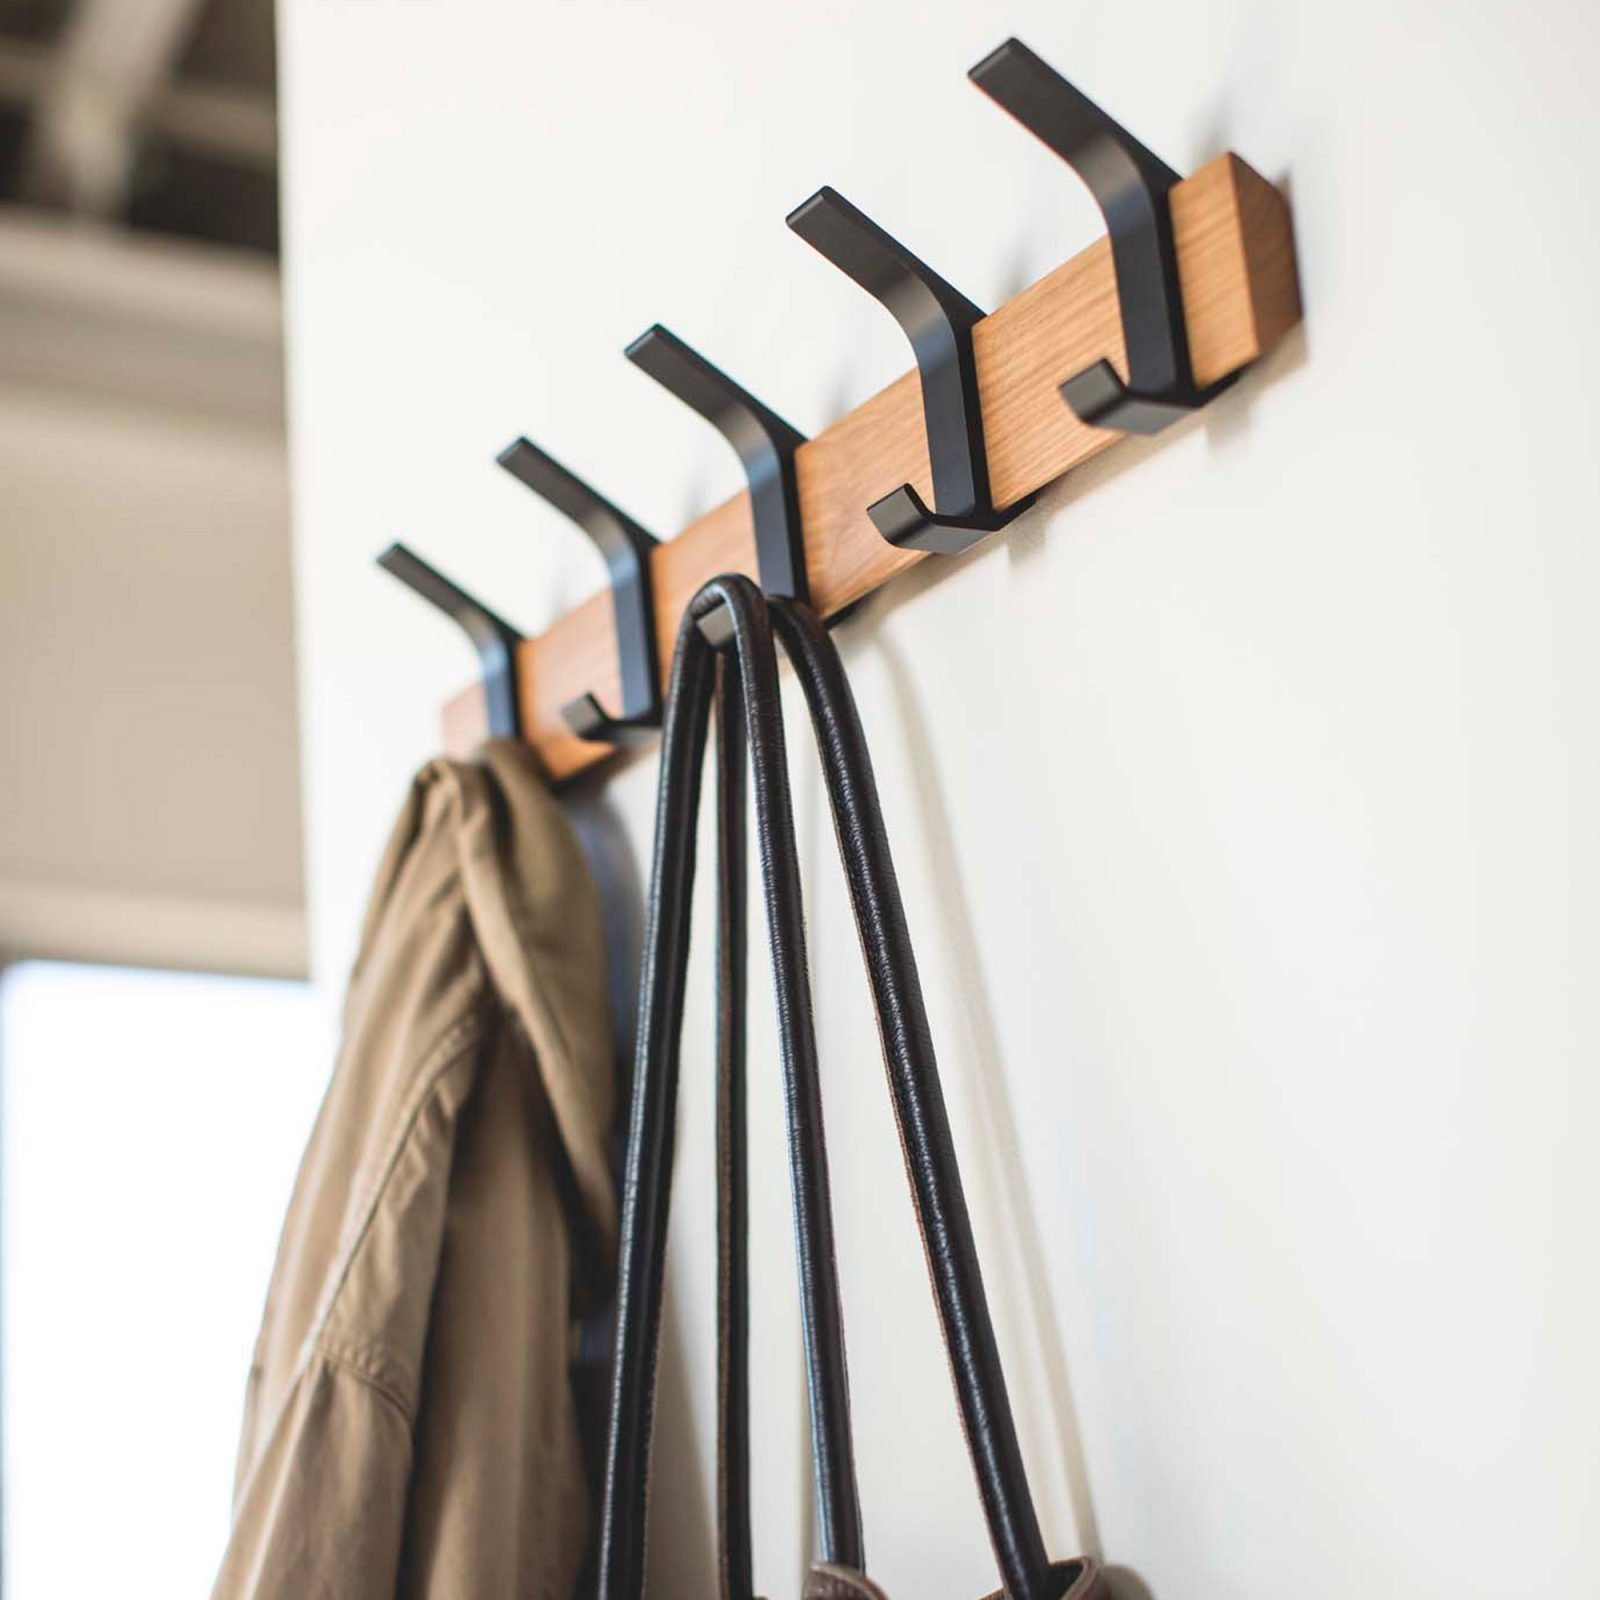 rin-wall-mounted-coat-hanger-brown-3